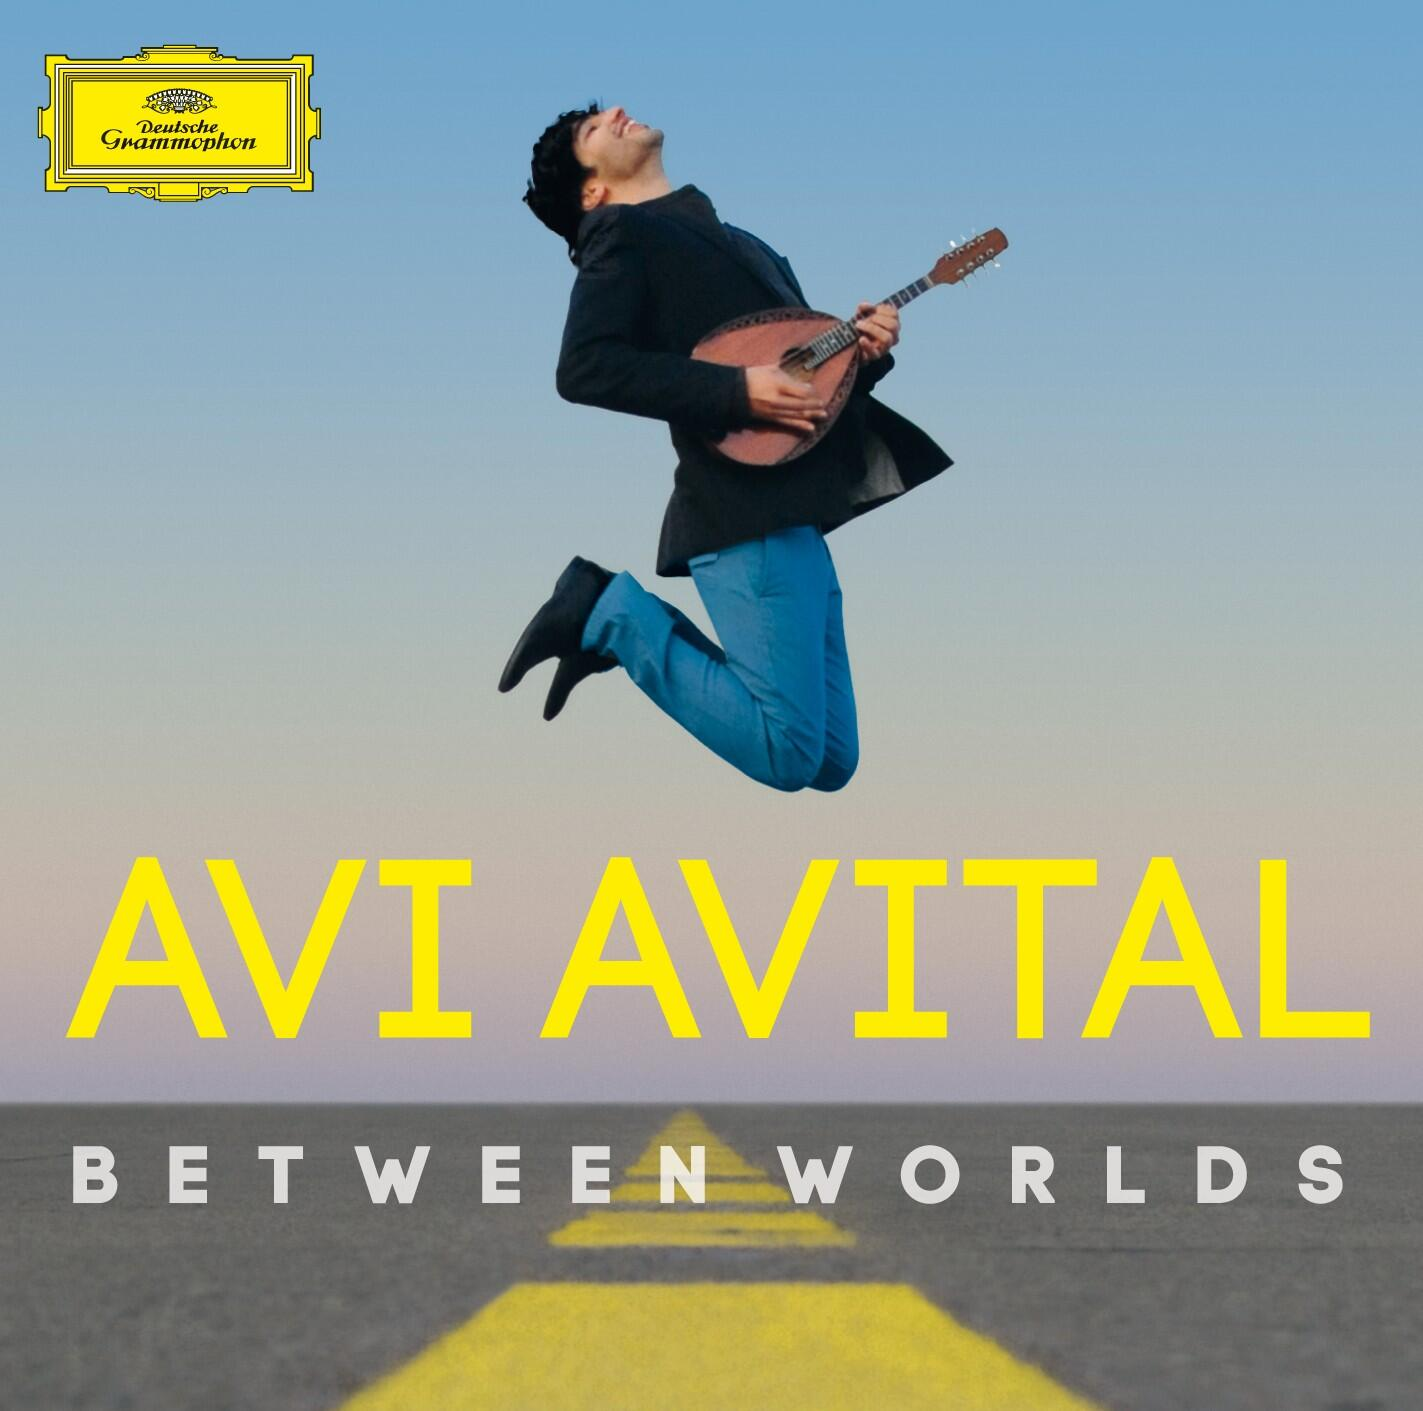 #Mandolin player @aviavital is releasing a new album, #BetweenWorlds, in January 2014. Watch out for more details! http://t.co/6IQ0aCQfAn